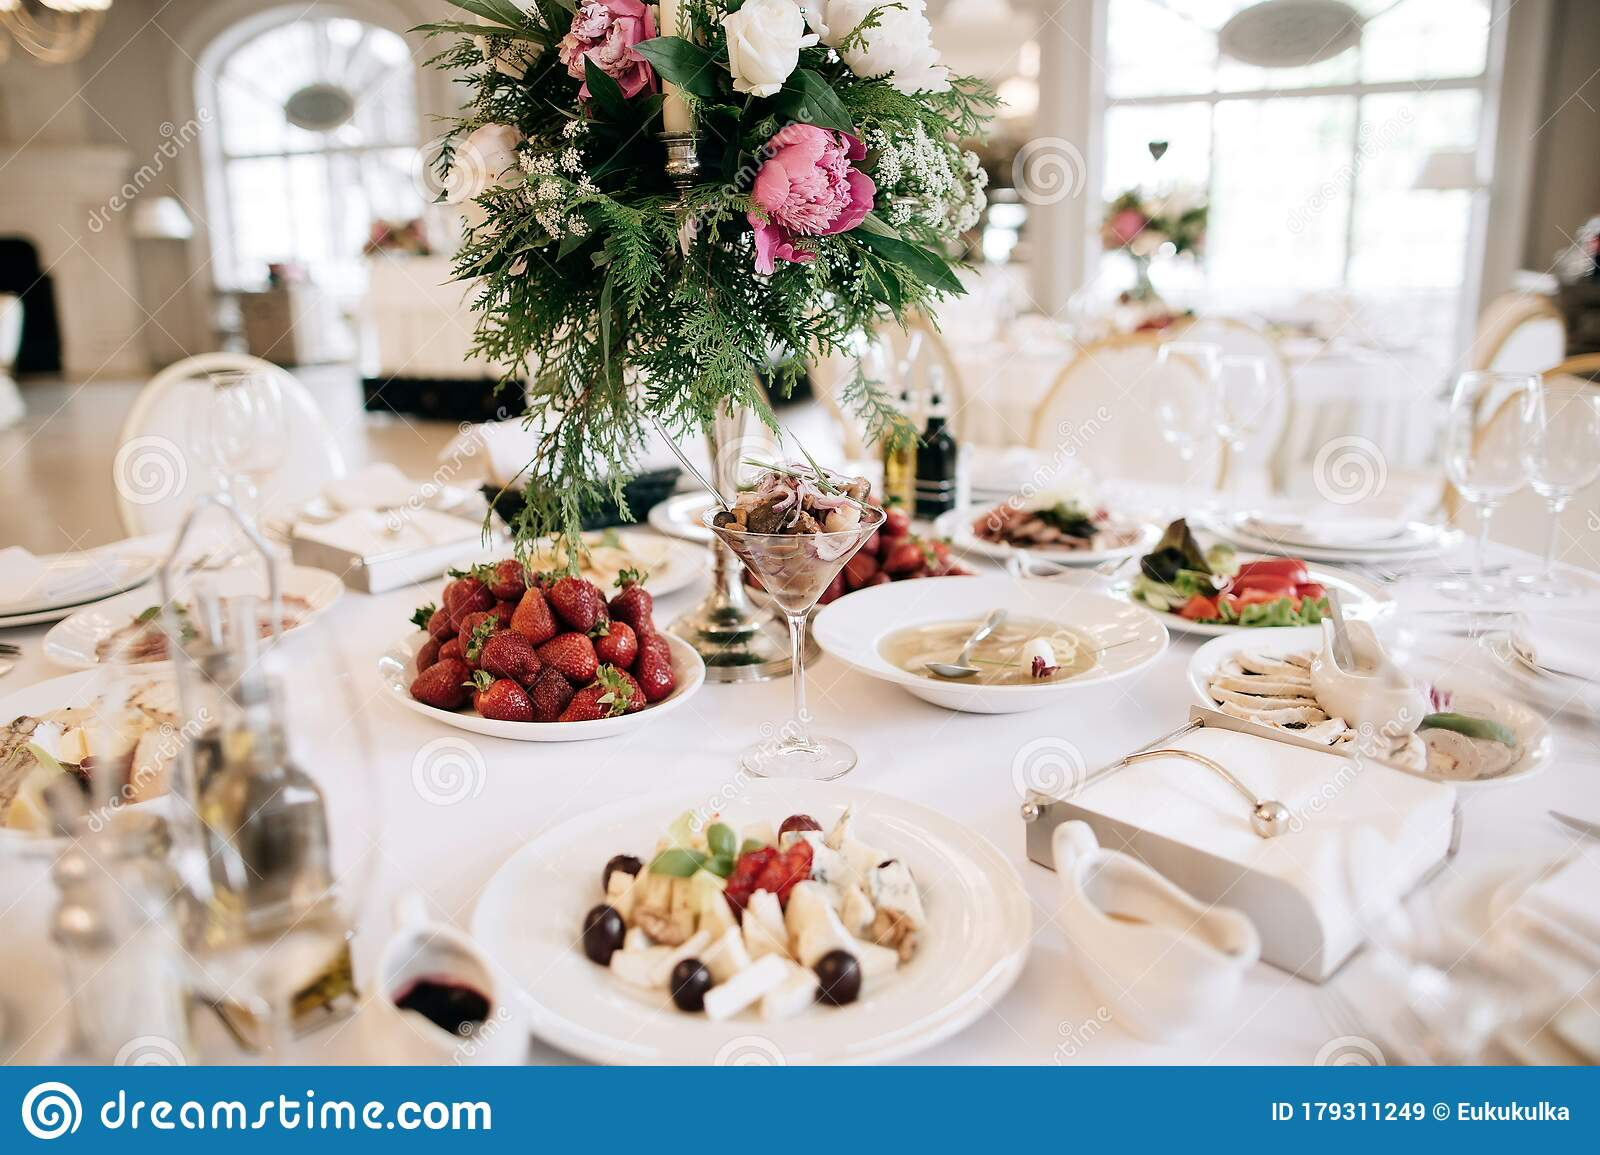 Restaurant Table With Food Catering Service Wedding Celebration Decoration Dinner Time Lunch Stock Image Image Of Cook Flowers 179311249